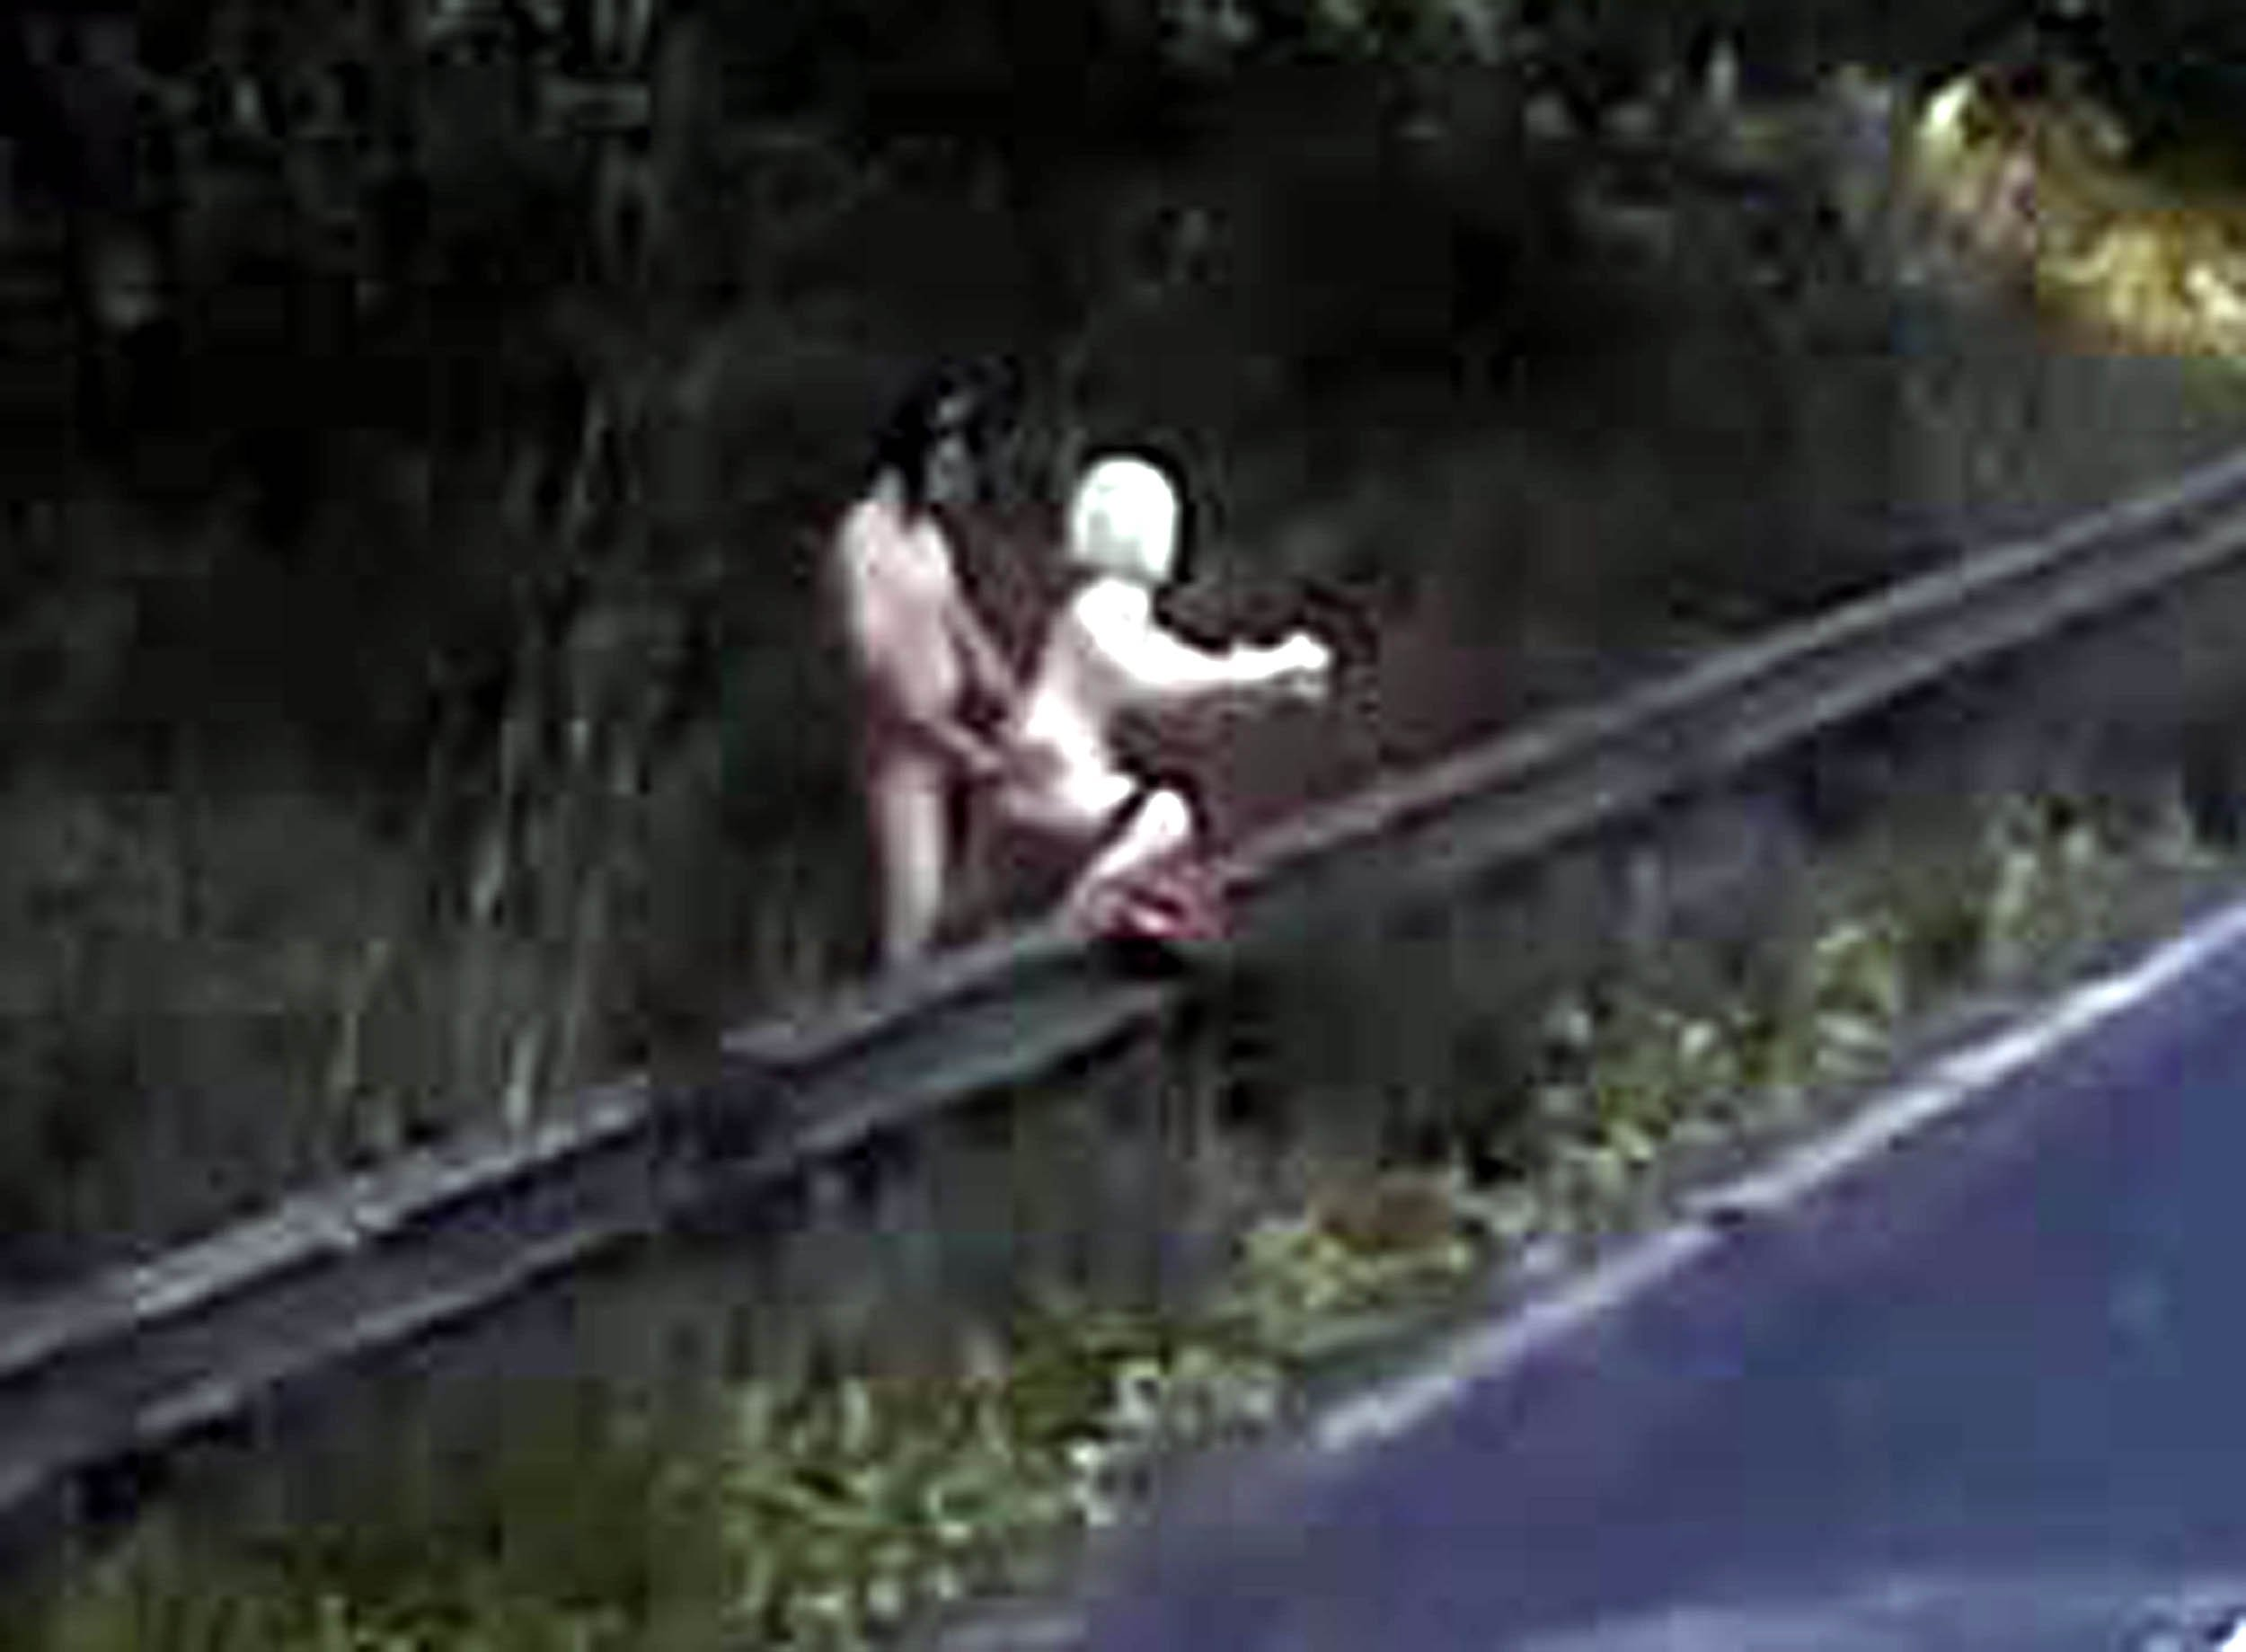 "AN amazing video shows a naked man appearing to get intimate with a blow up doll next to one of Britain's busiest motorways. The jaw-dropping incident shows the man standing behind the doll next to a crash barrier on the M1. The incident, near Northampton, was captured on the dashcam of a HGV on Wednesday 19th of September at 11:10am. The naked man was believed to be standing at the end of the slip road from Northampton Roadchef services at junction 15a of the M1 motorway heading Northbound. The driver who the HGV who wishes to be anonymous said: ""Some people have very strange hobbies and fetishes"". The bizarre footage shows the HGV on the M1 Northbound with the slip road to its left."